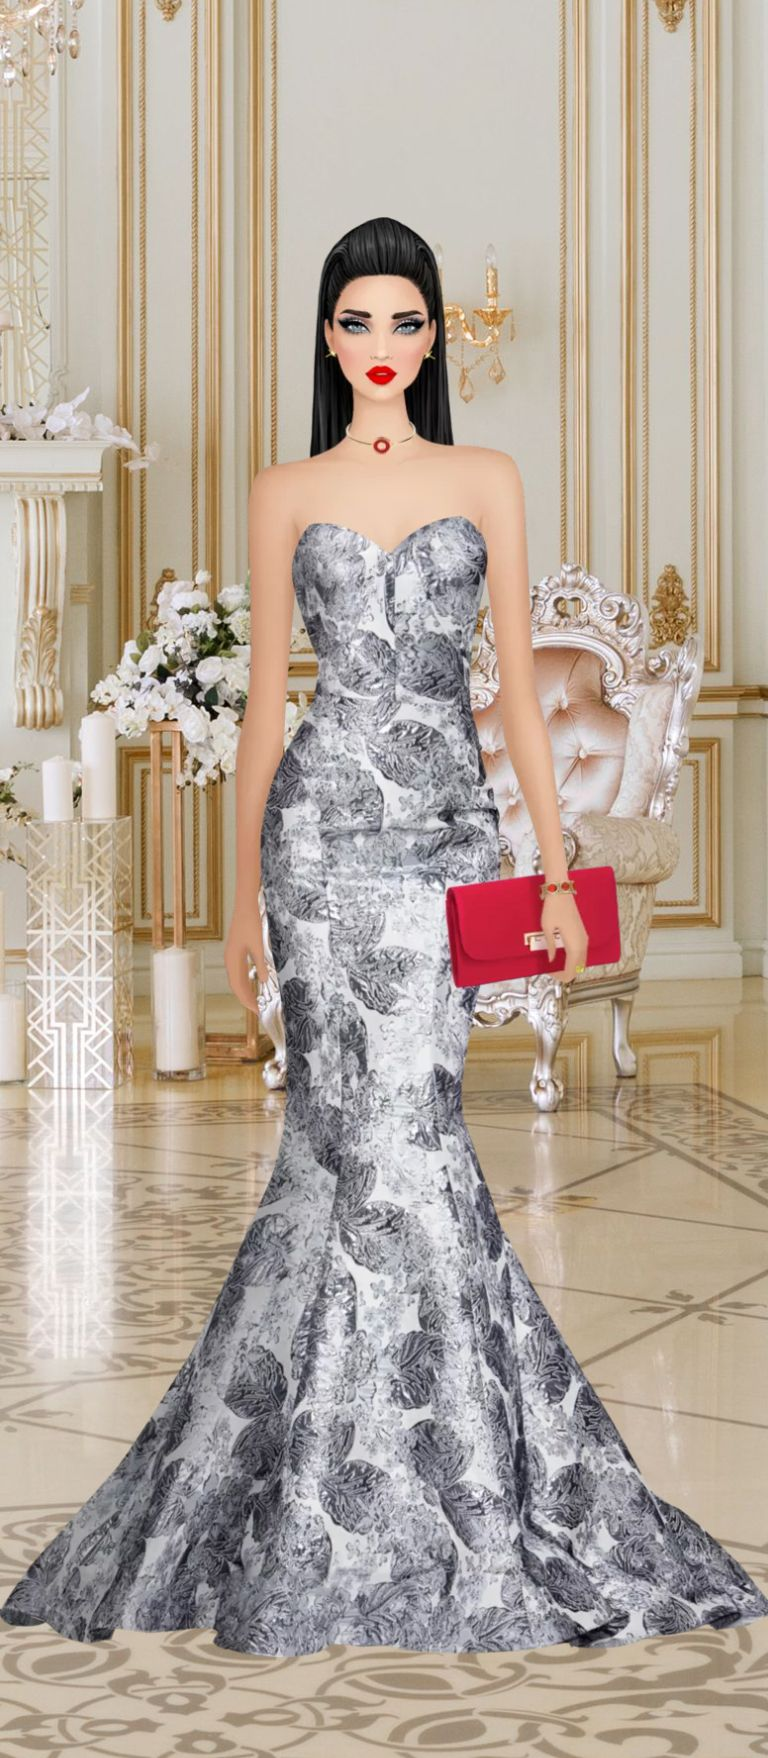 The queen posse covet fashion pinterest fashion sketches and